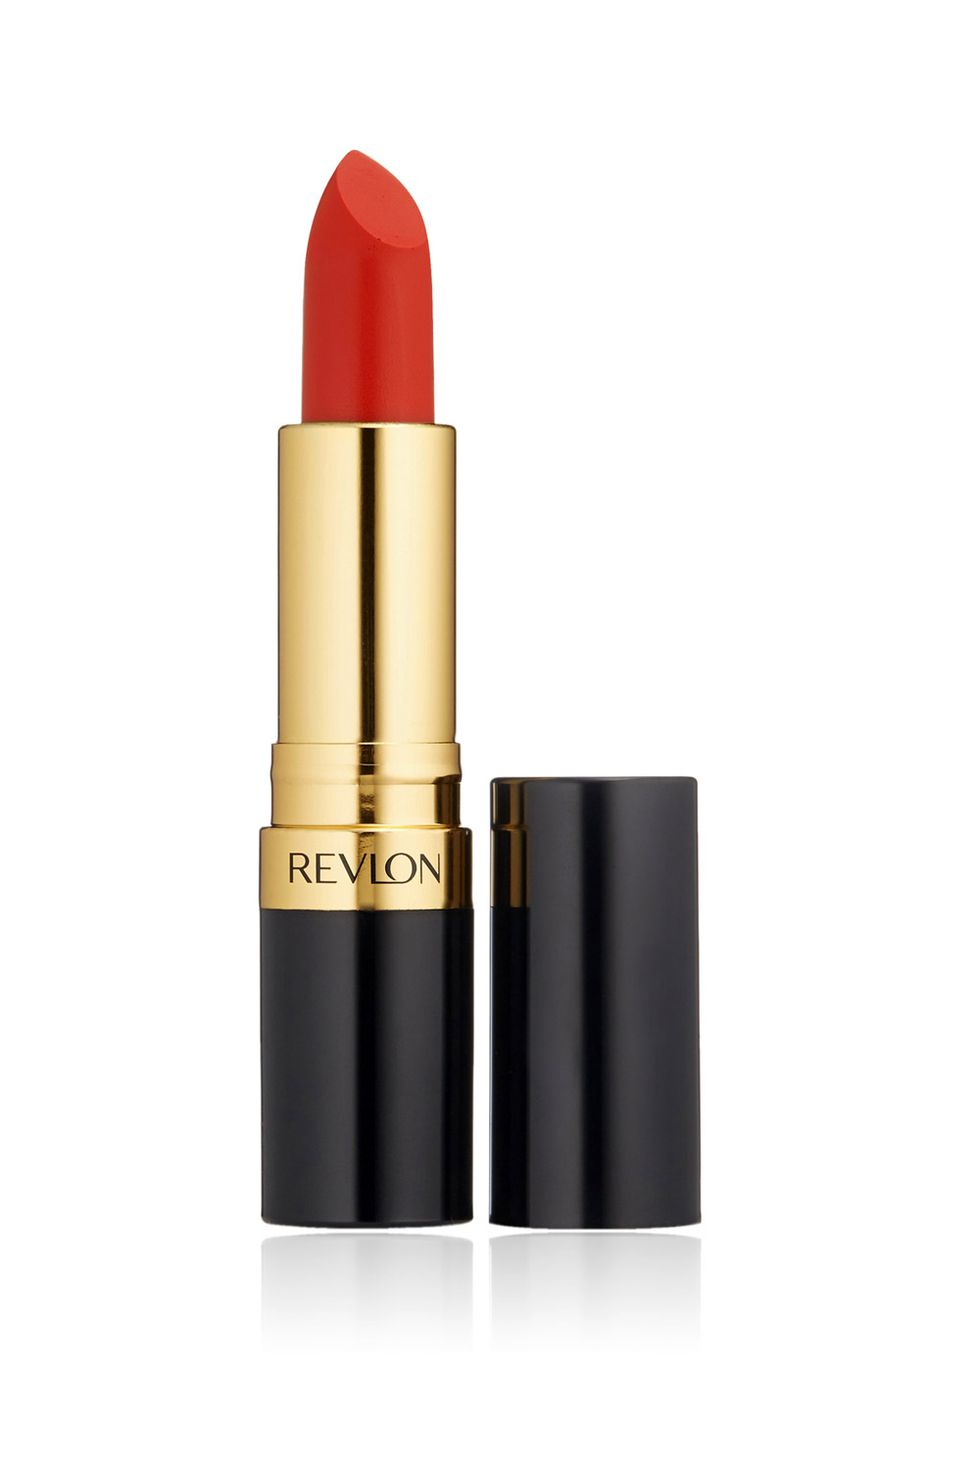 Revlon Super Lustrous Lipstick in Certainly Red